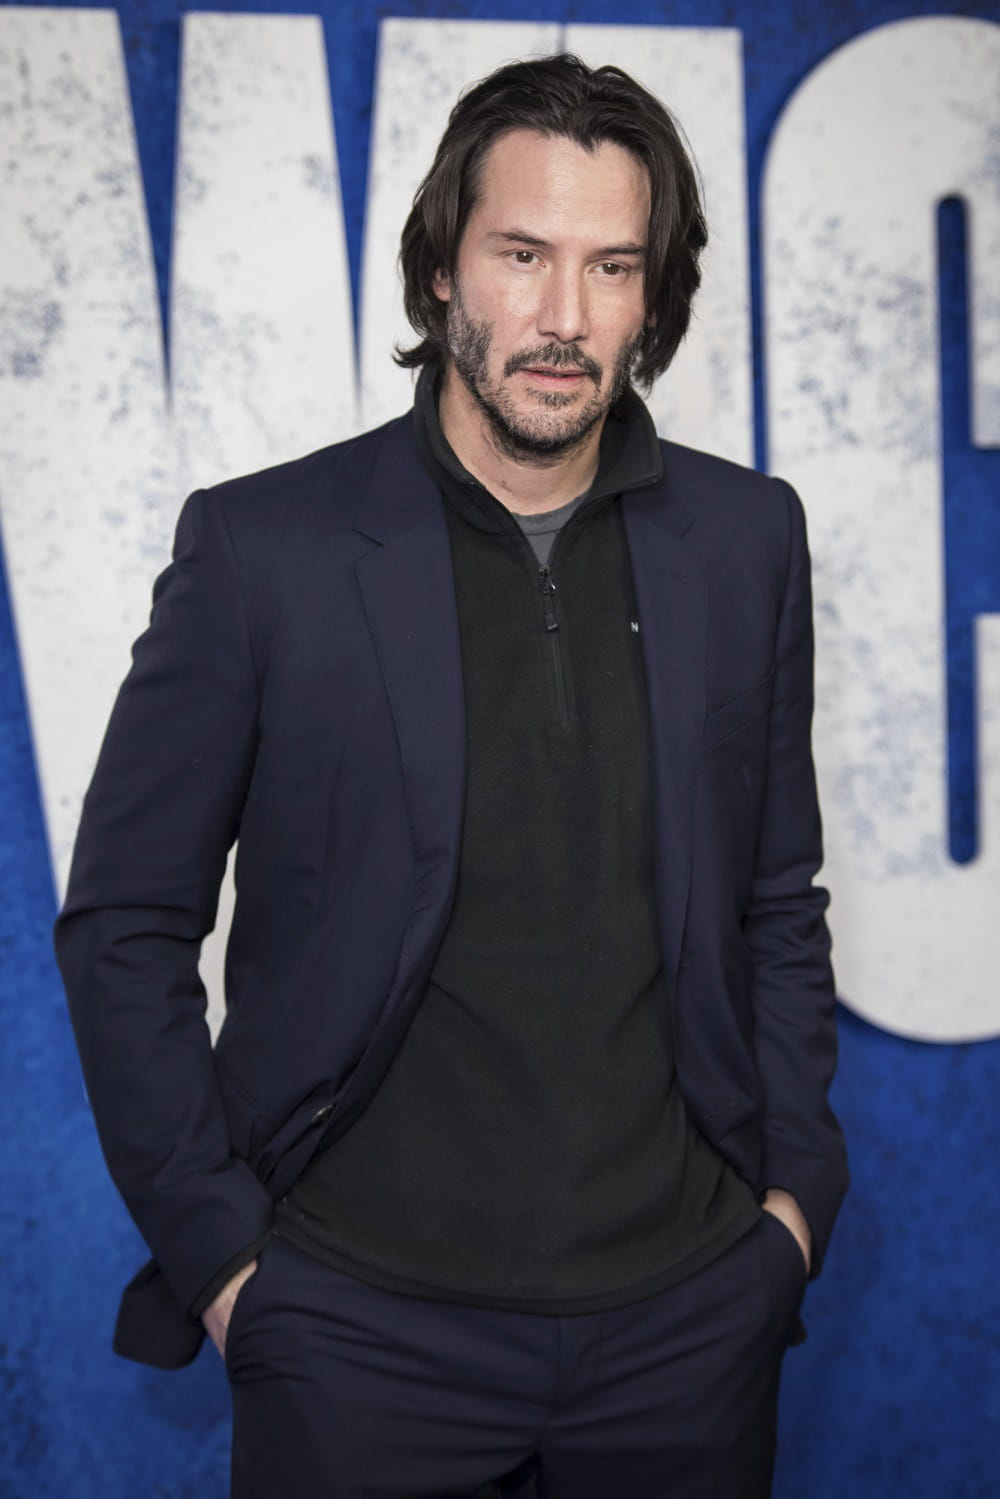 keanu reeves et le test de paternit. Black Bedroom Furniture Sets. Home Design Ideas